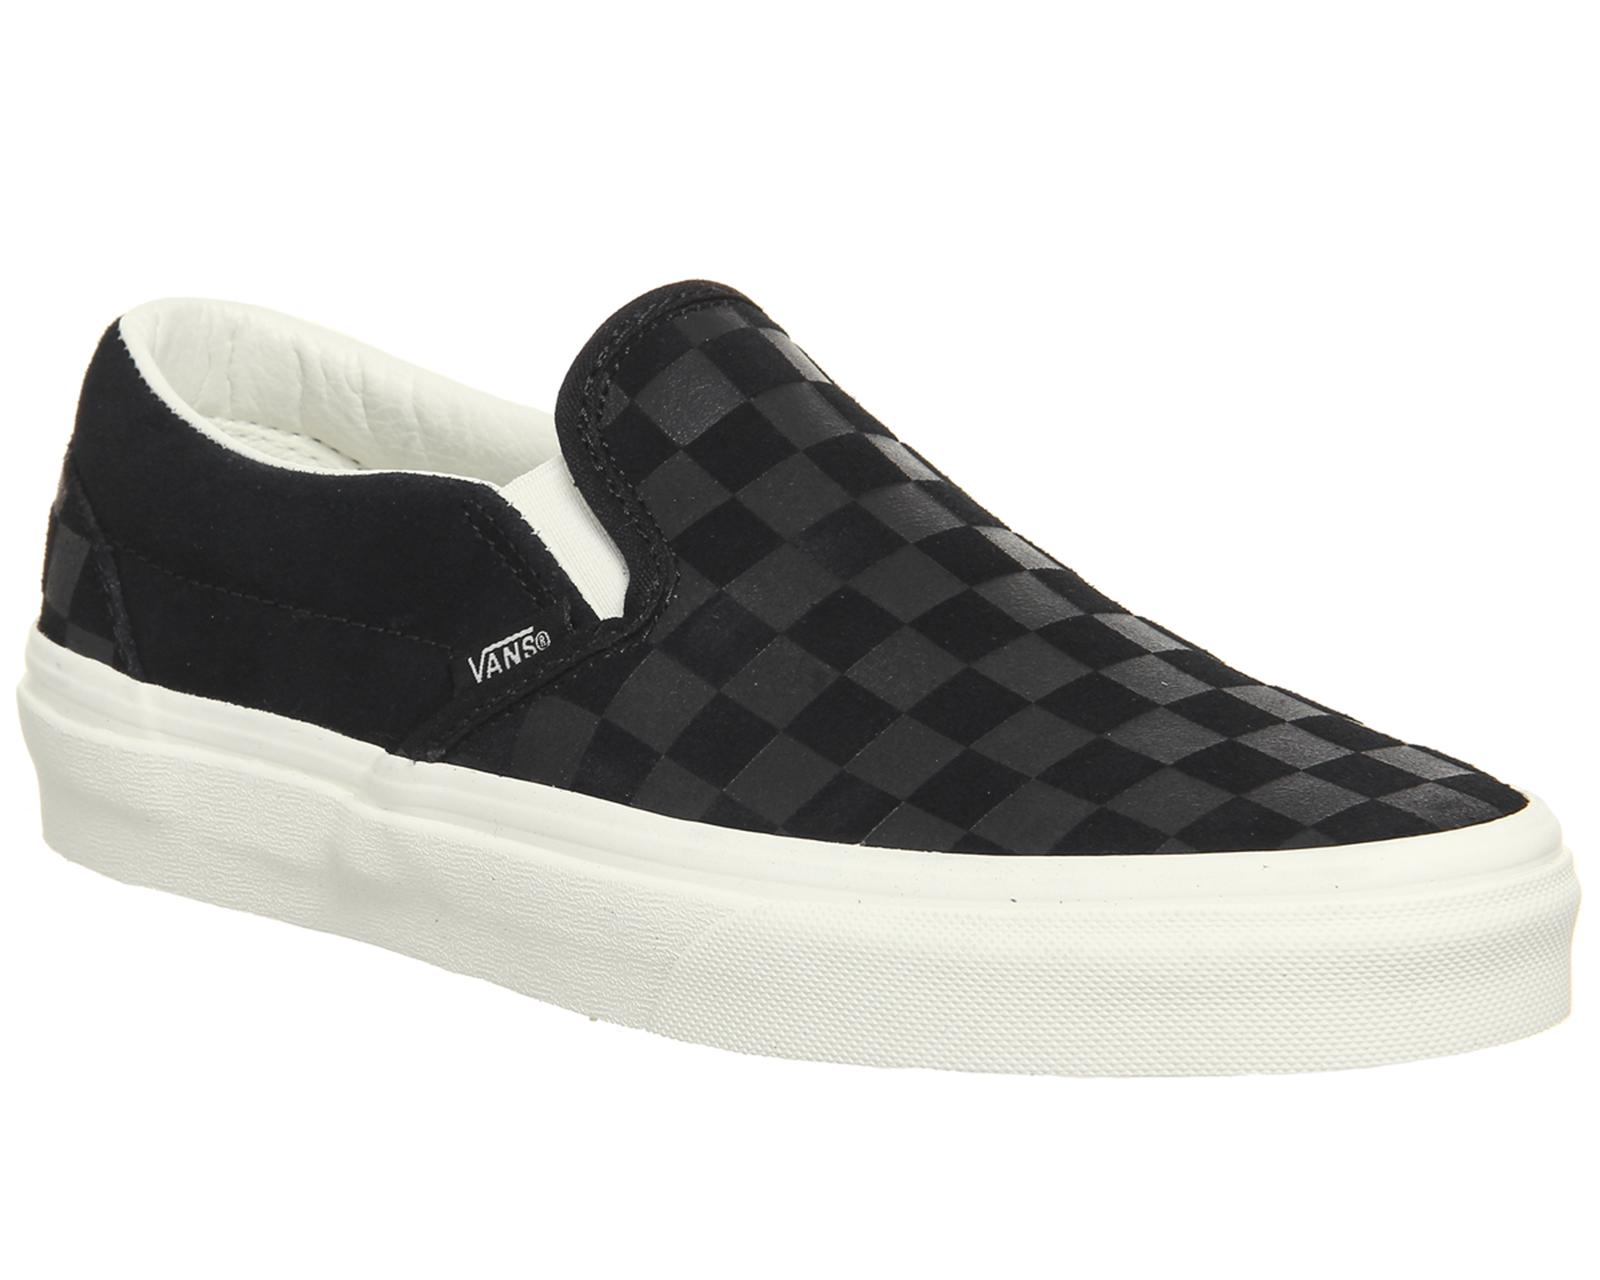 f4b9d908cd Sentinel Mens Vans Vans Classic Slip On Trainers Black Marshmallow  Checkerboard Trainers